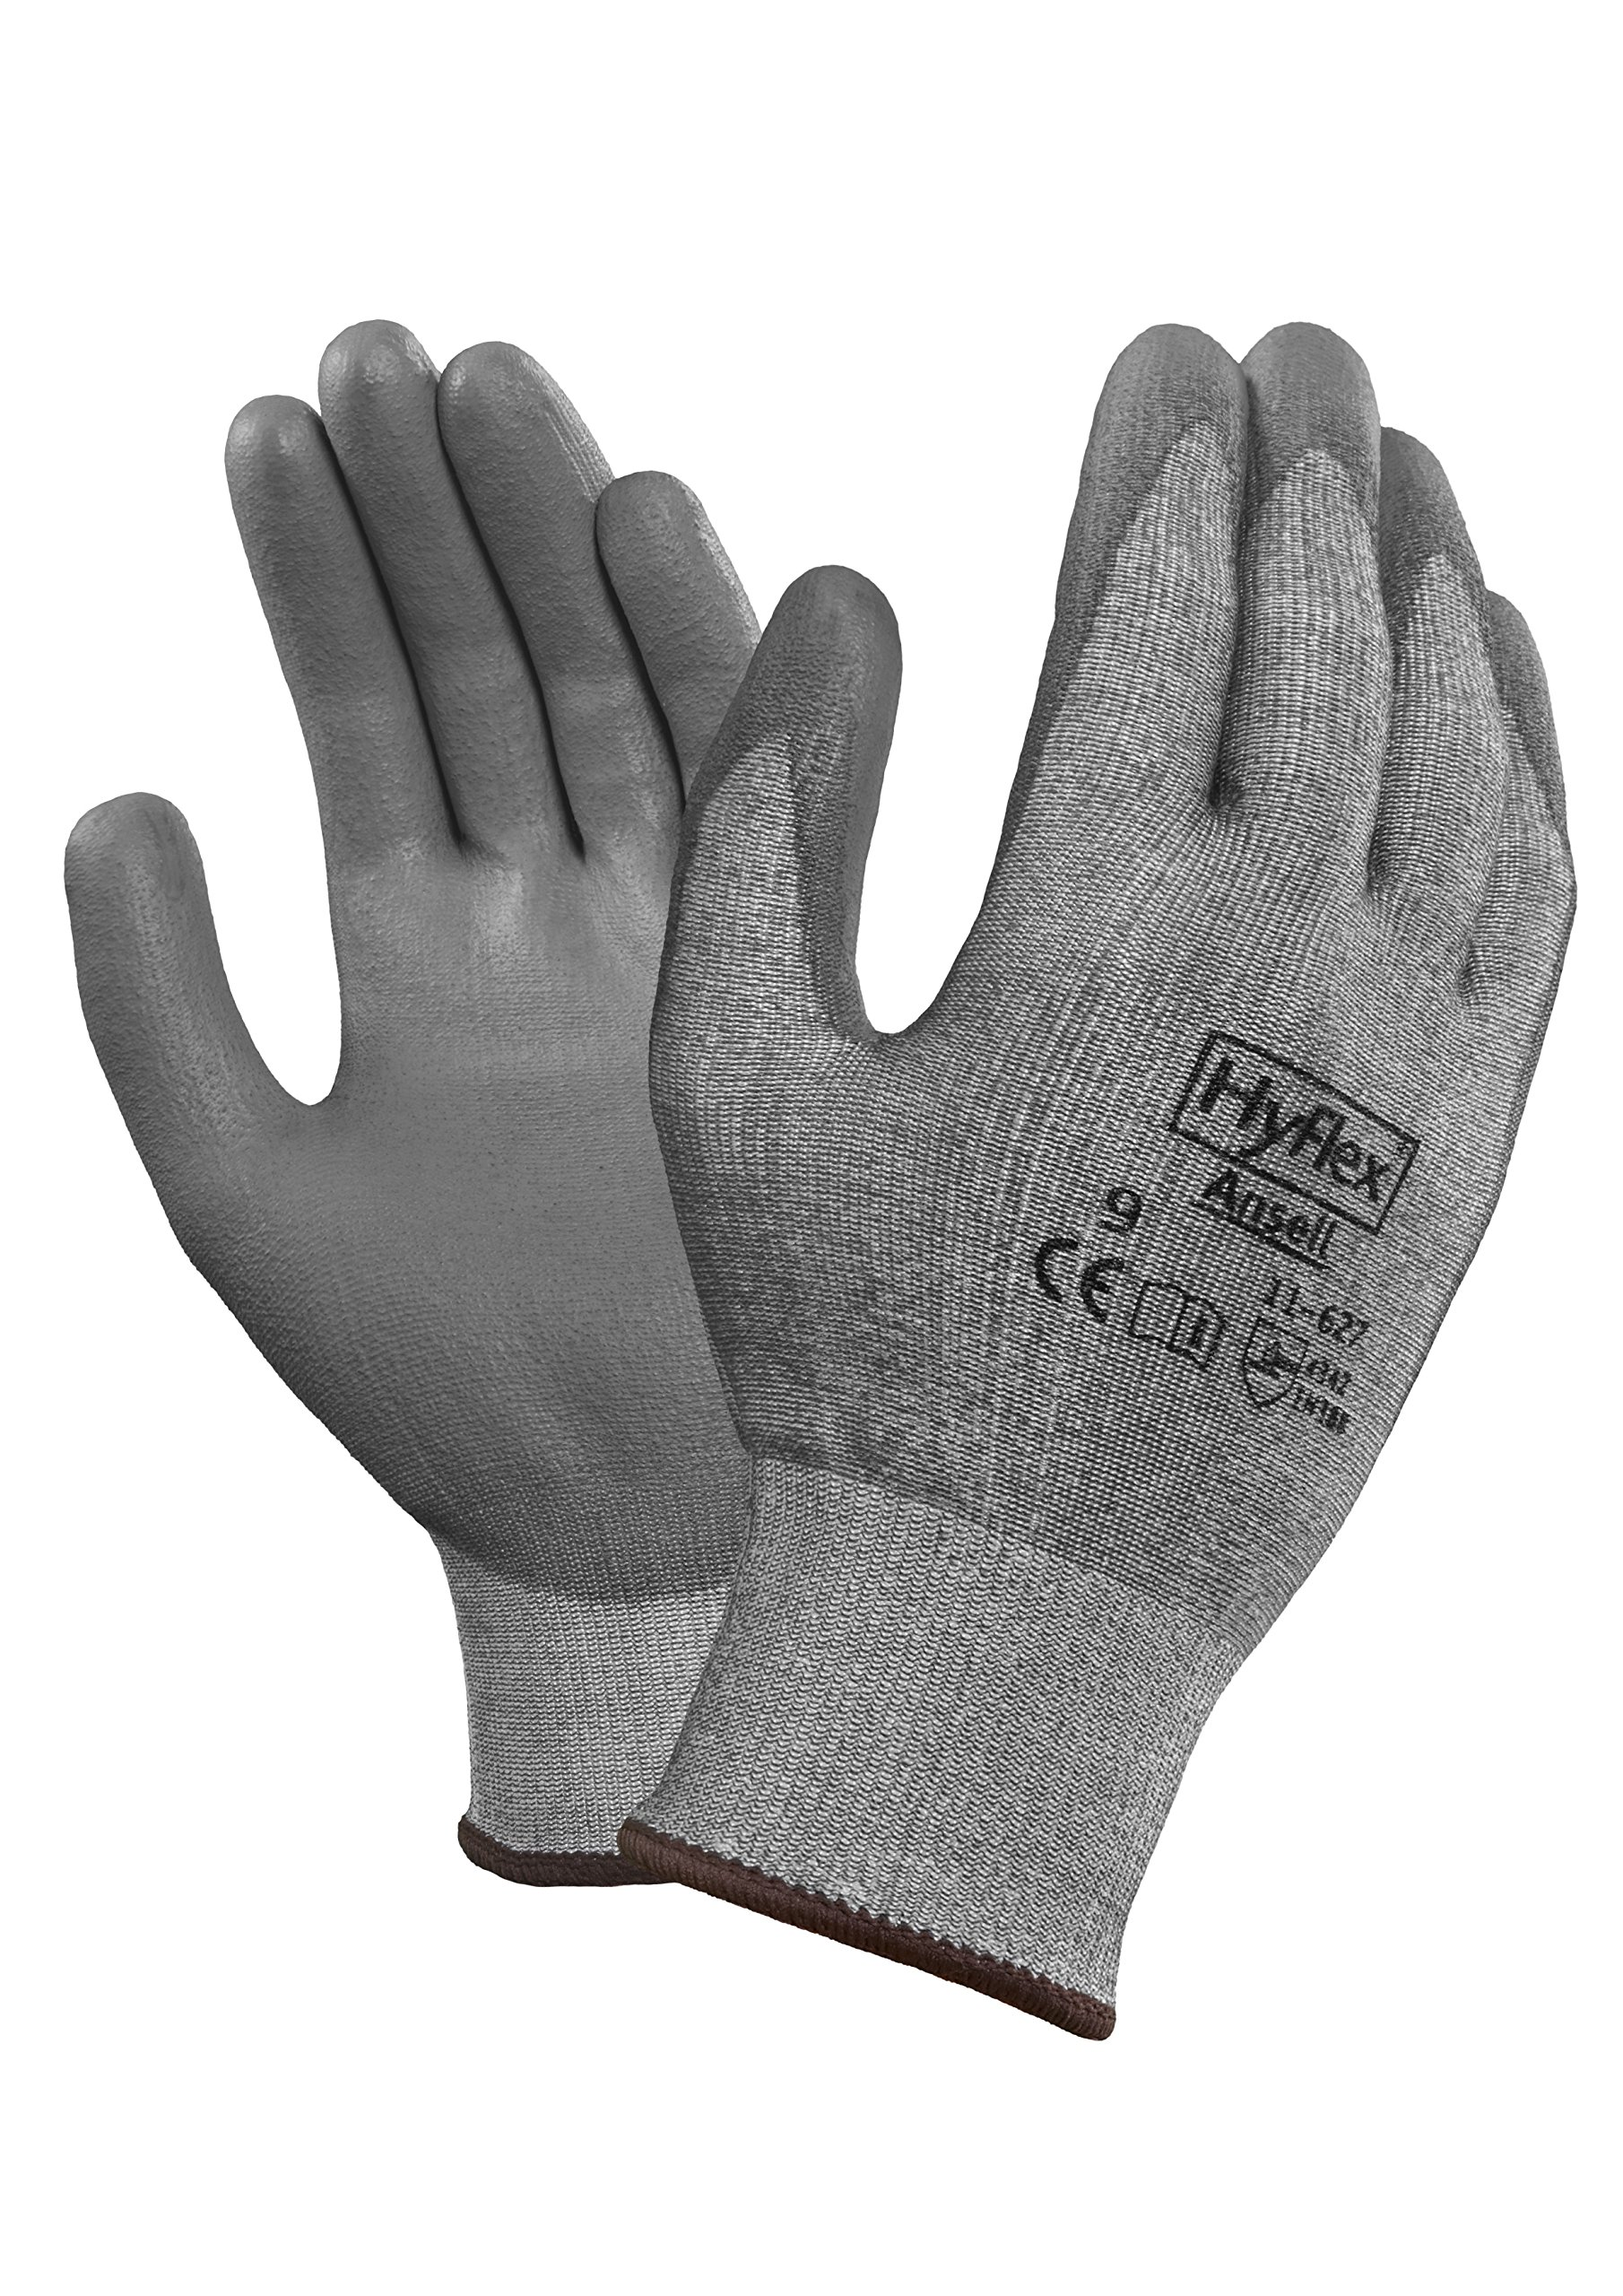 Ansell HyFlex 11-627 Lycra Light Duty Safety Glove with DSM Dyneema Technology, Abrasion/Cut Resistant, Size 9, Gray (Pack of 12 Pair) by Ansell (Image #1)